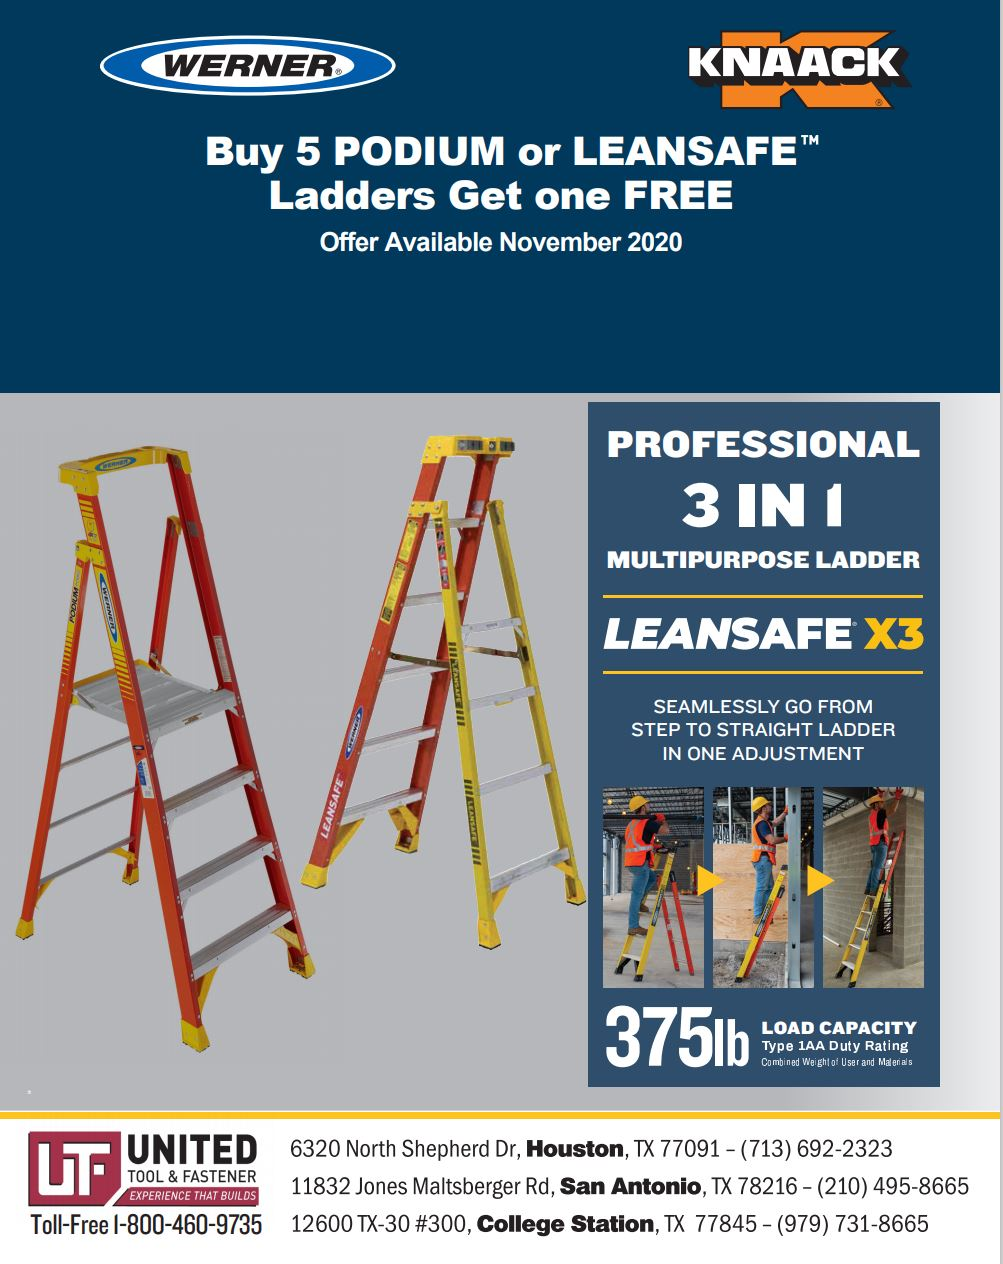 Werner Podium or Leansafe Ladder Promotion